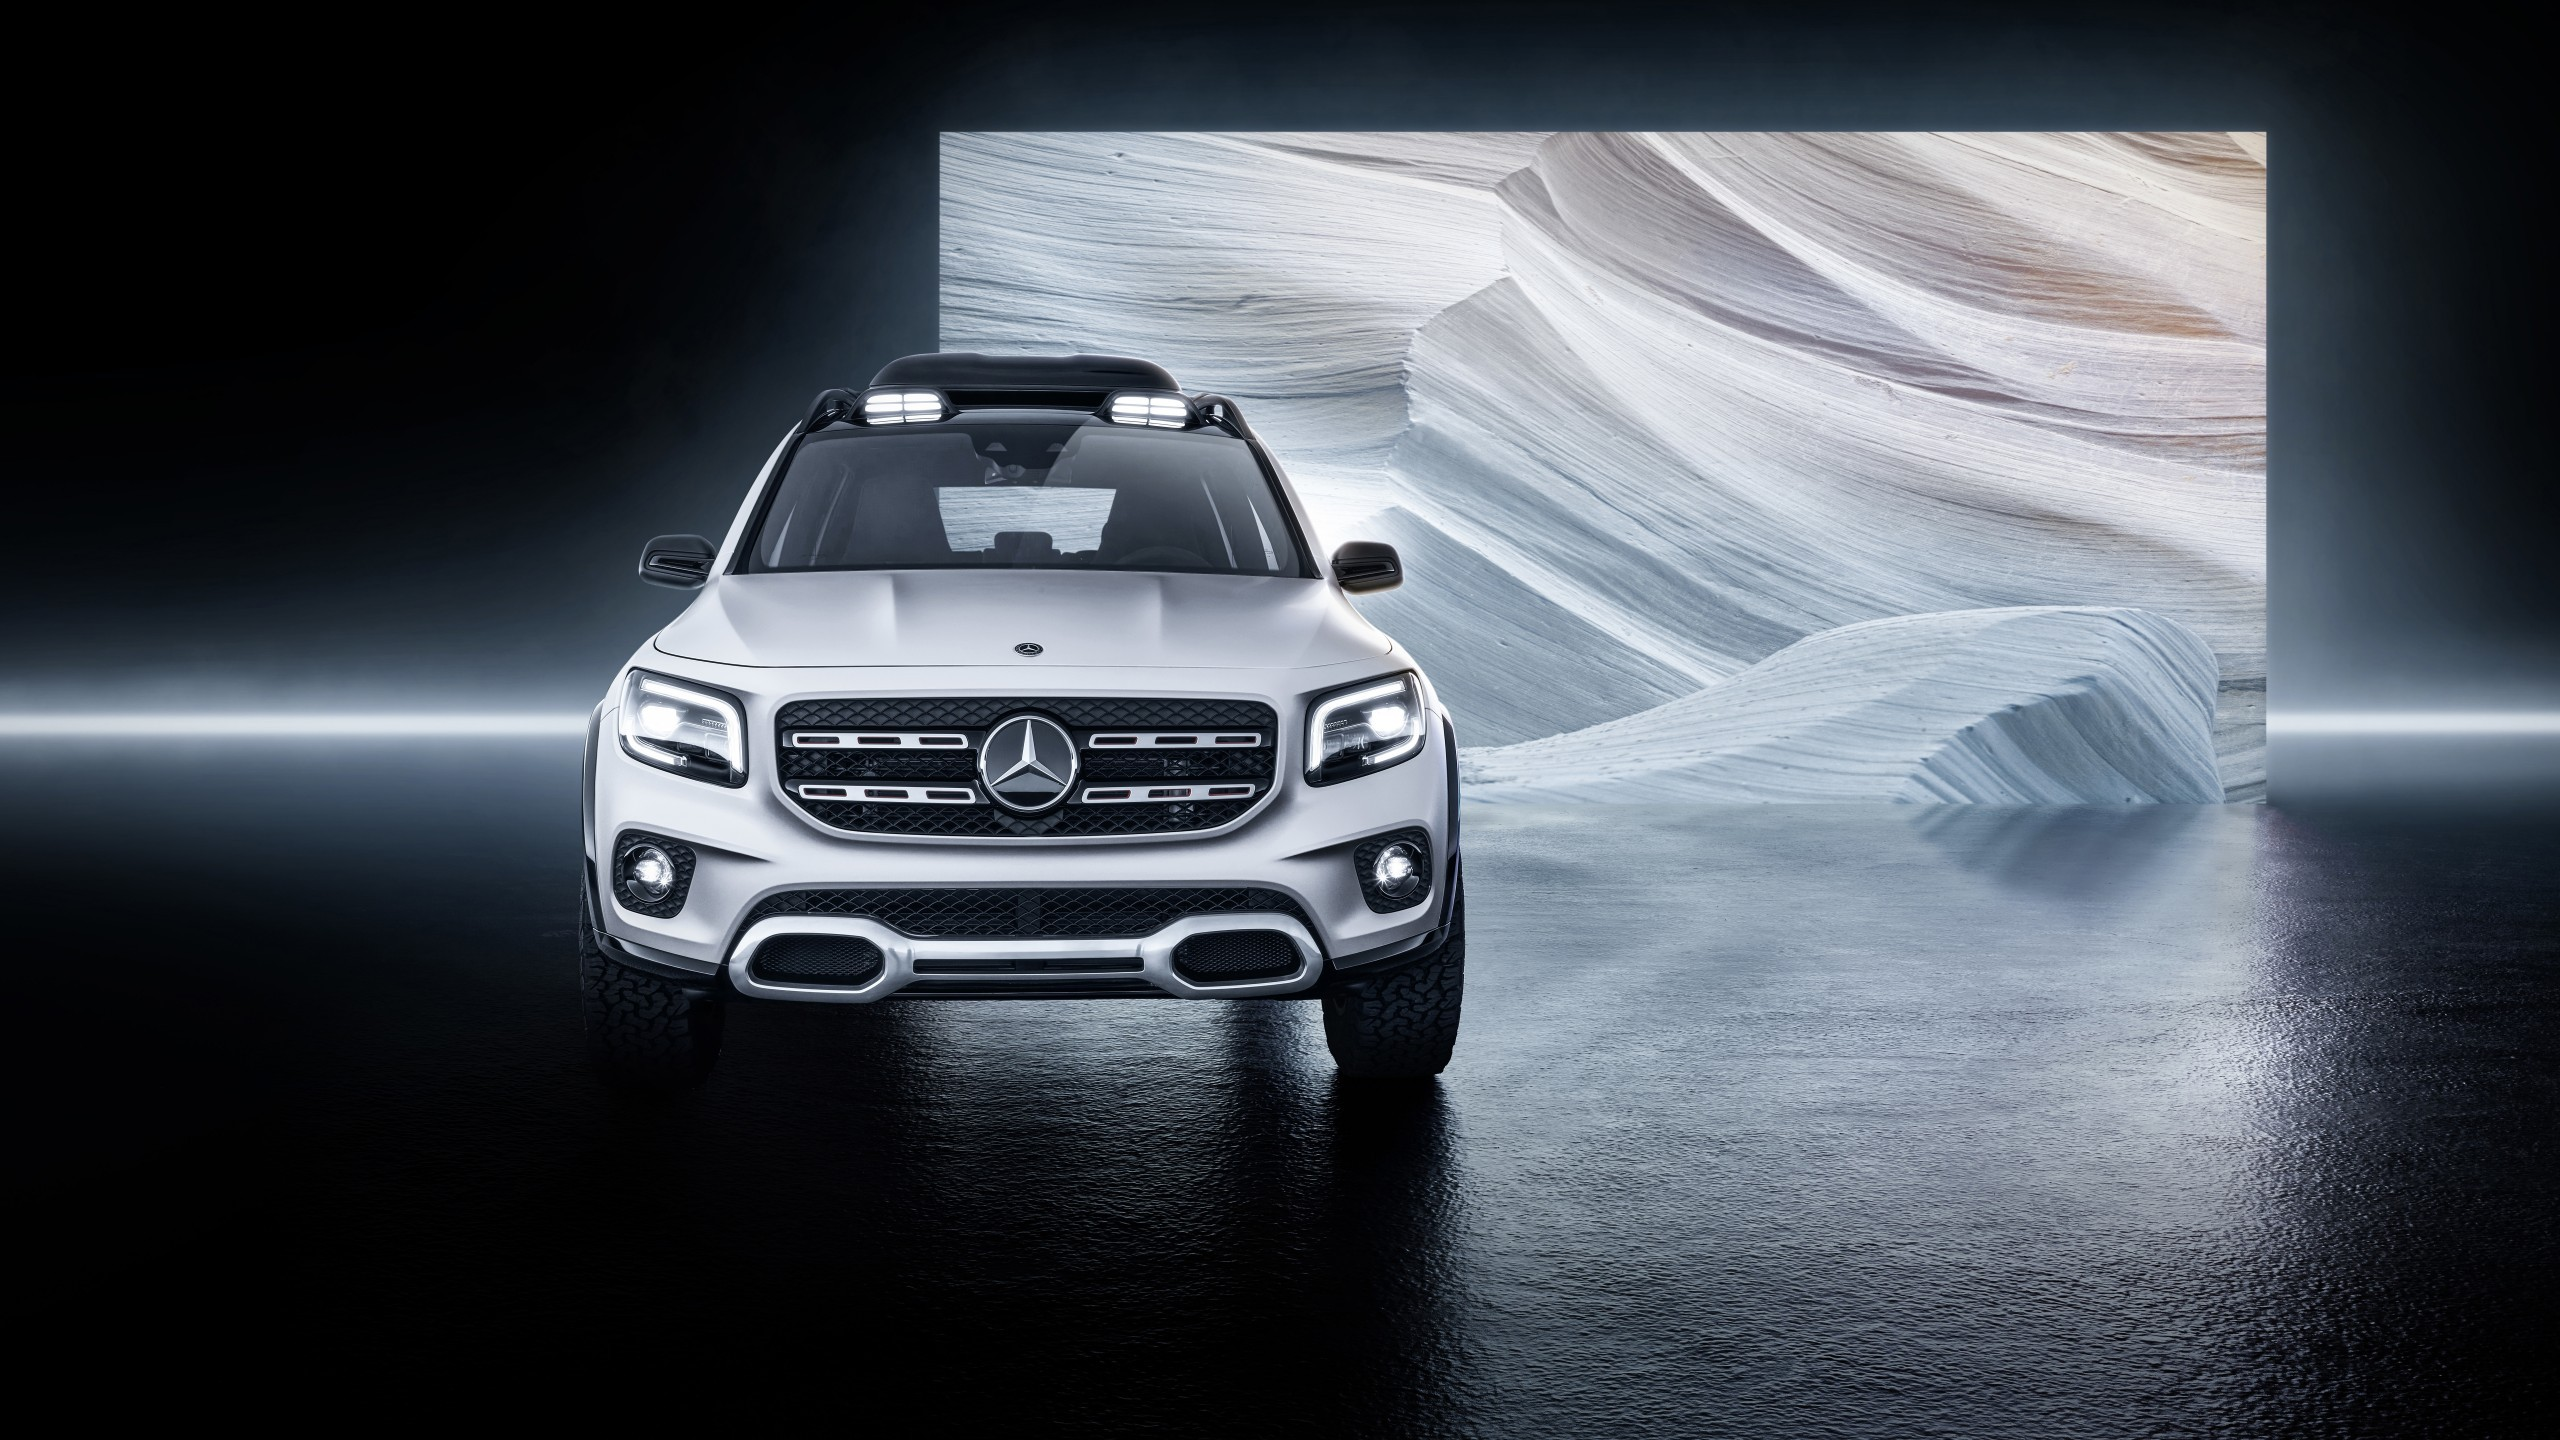 Download 2560x1440 Mercedes benz Glb Class Suv Cars White Front 2560x1440